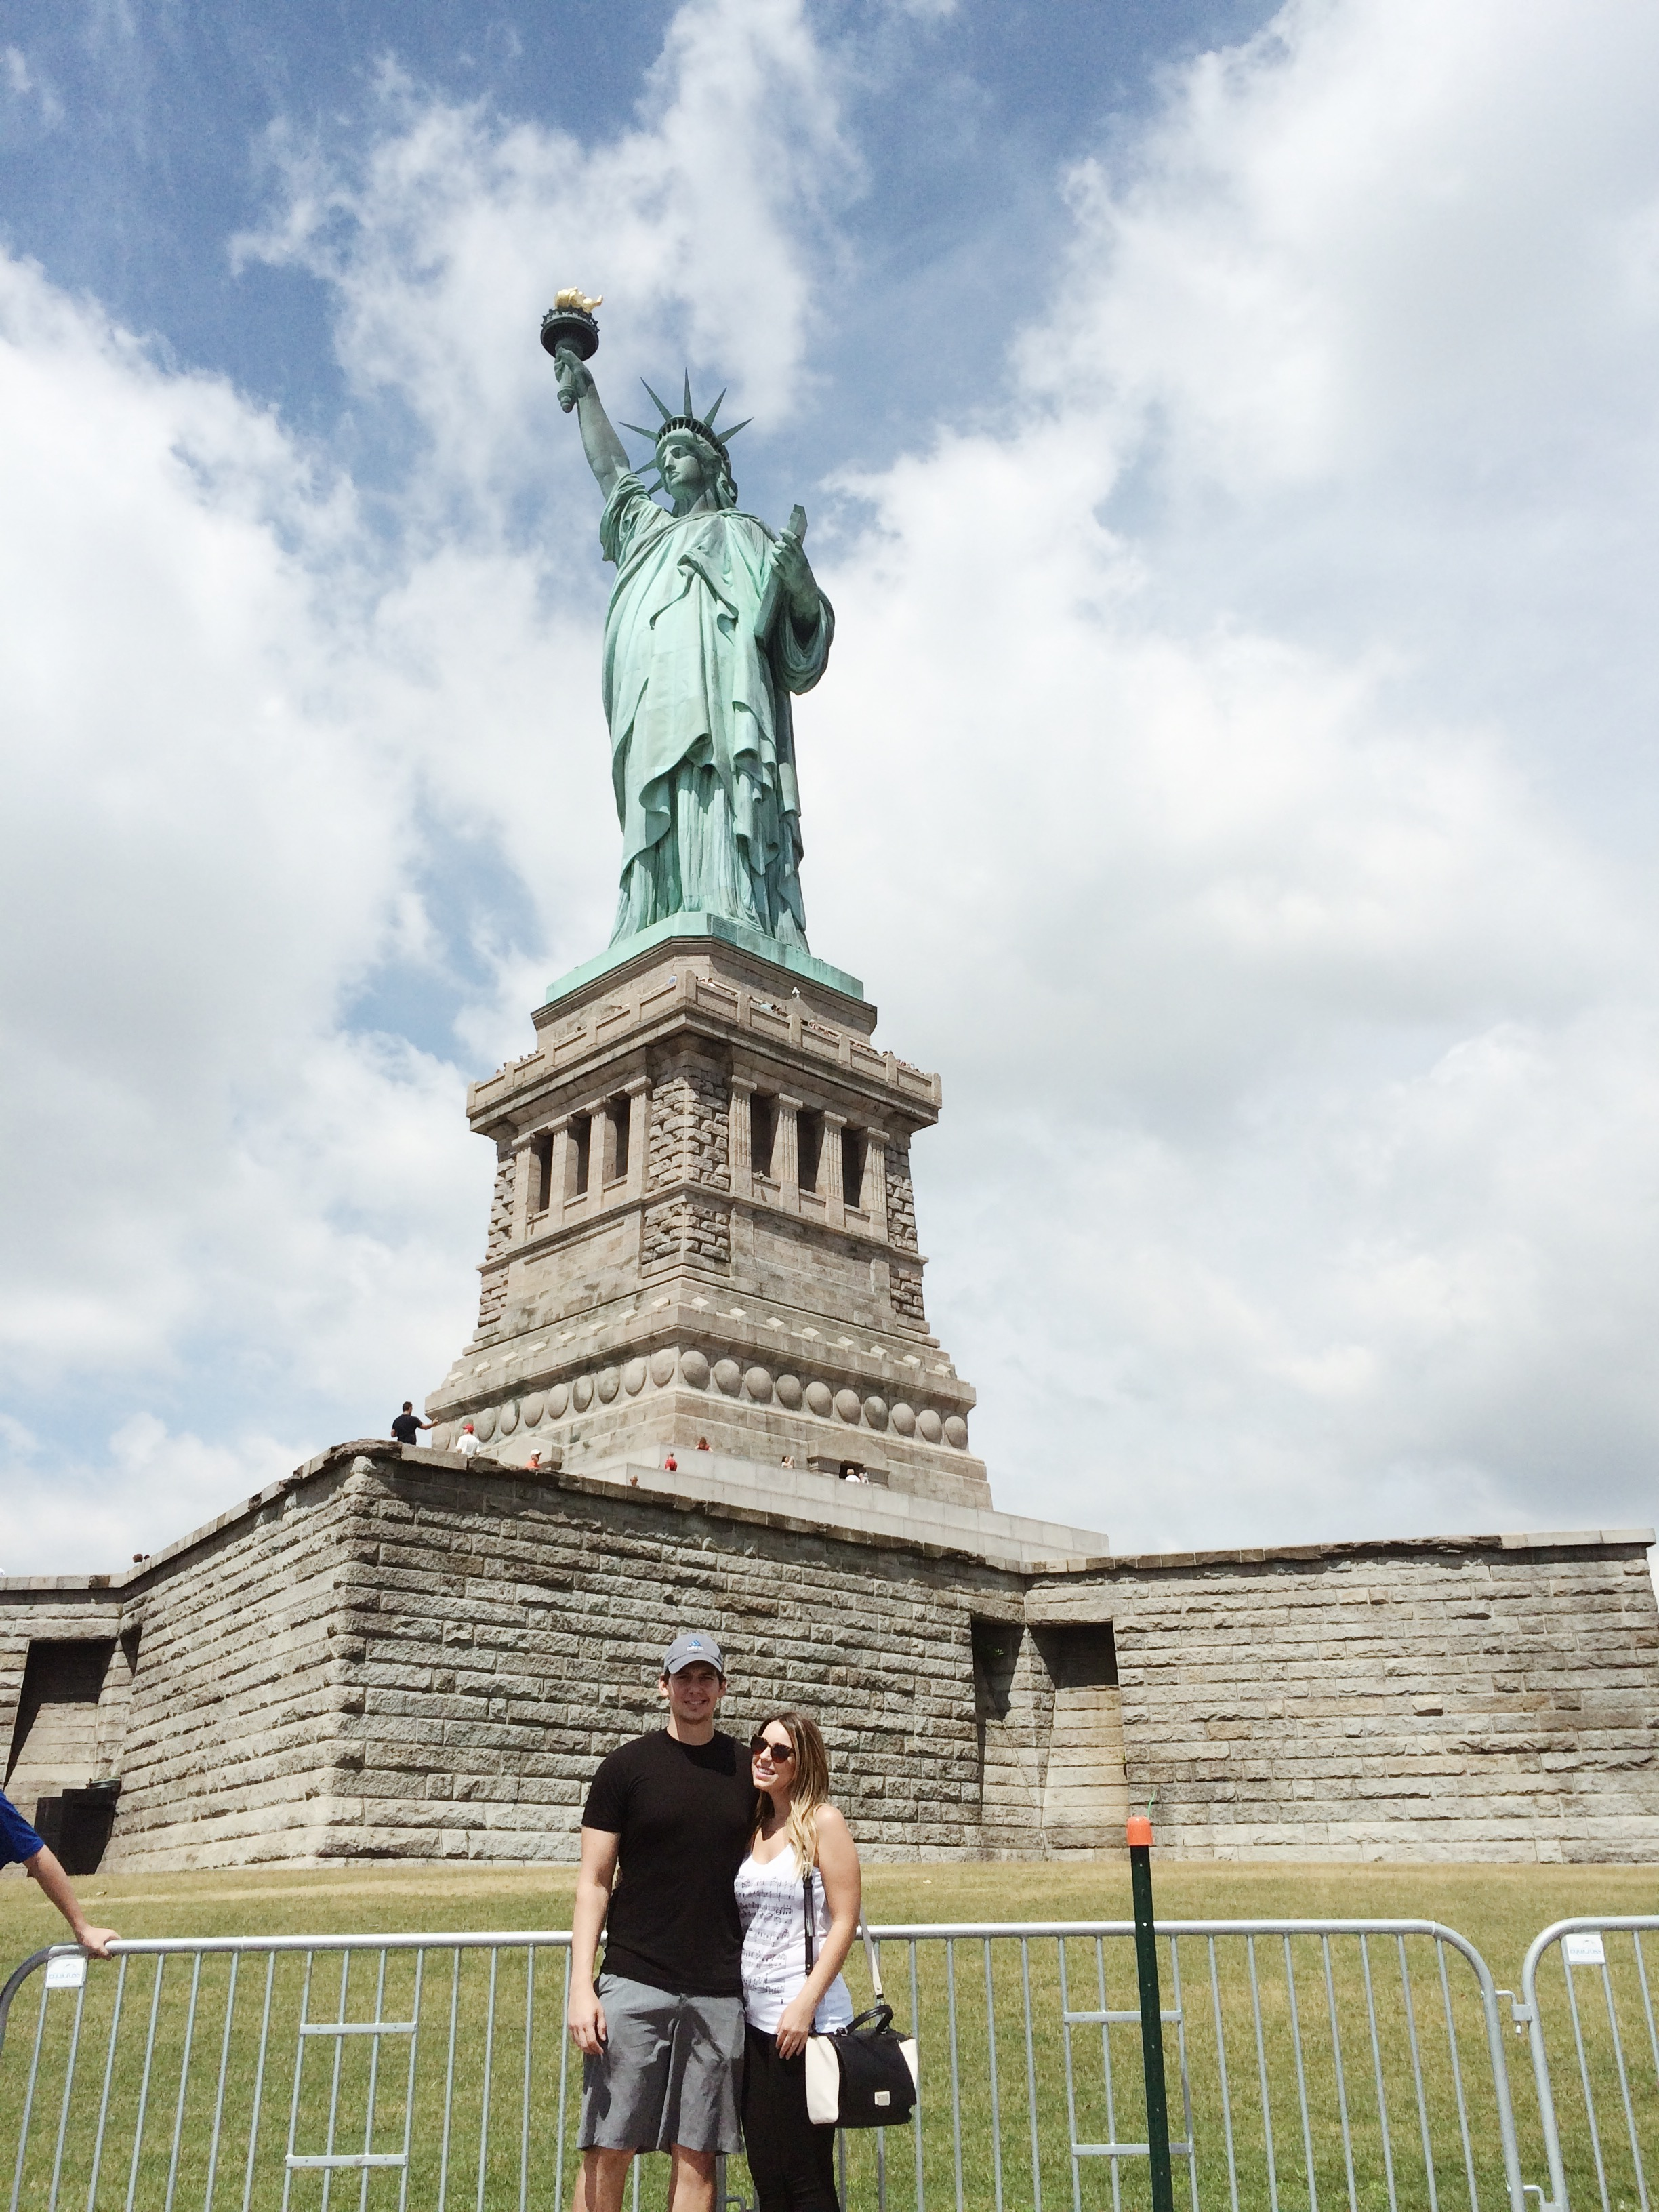 Travel Diary: Our 1st time to NYC